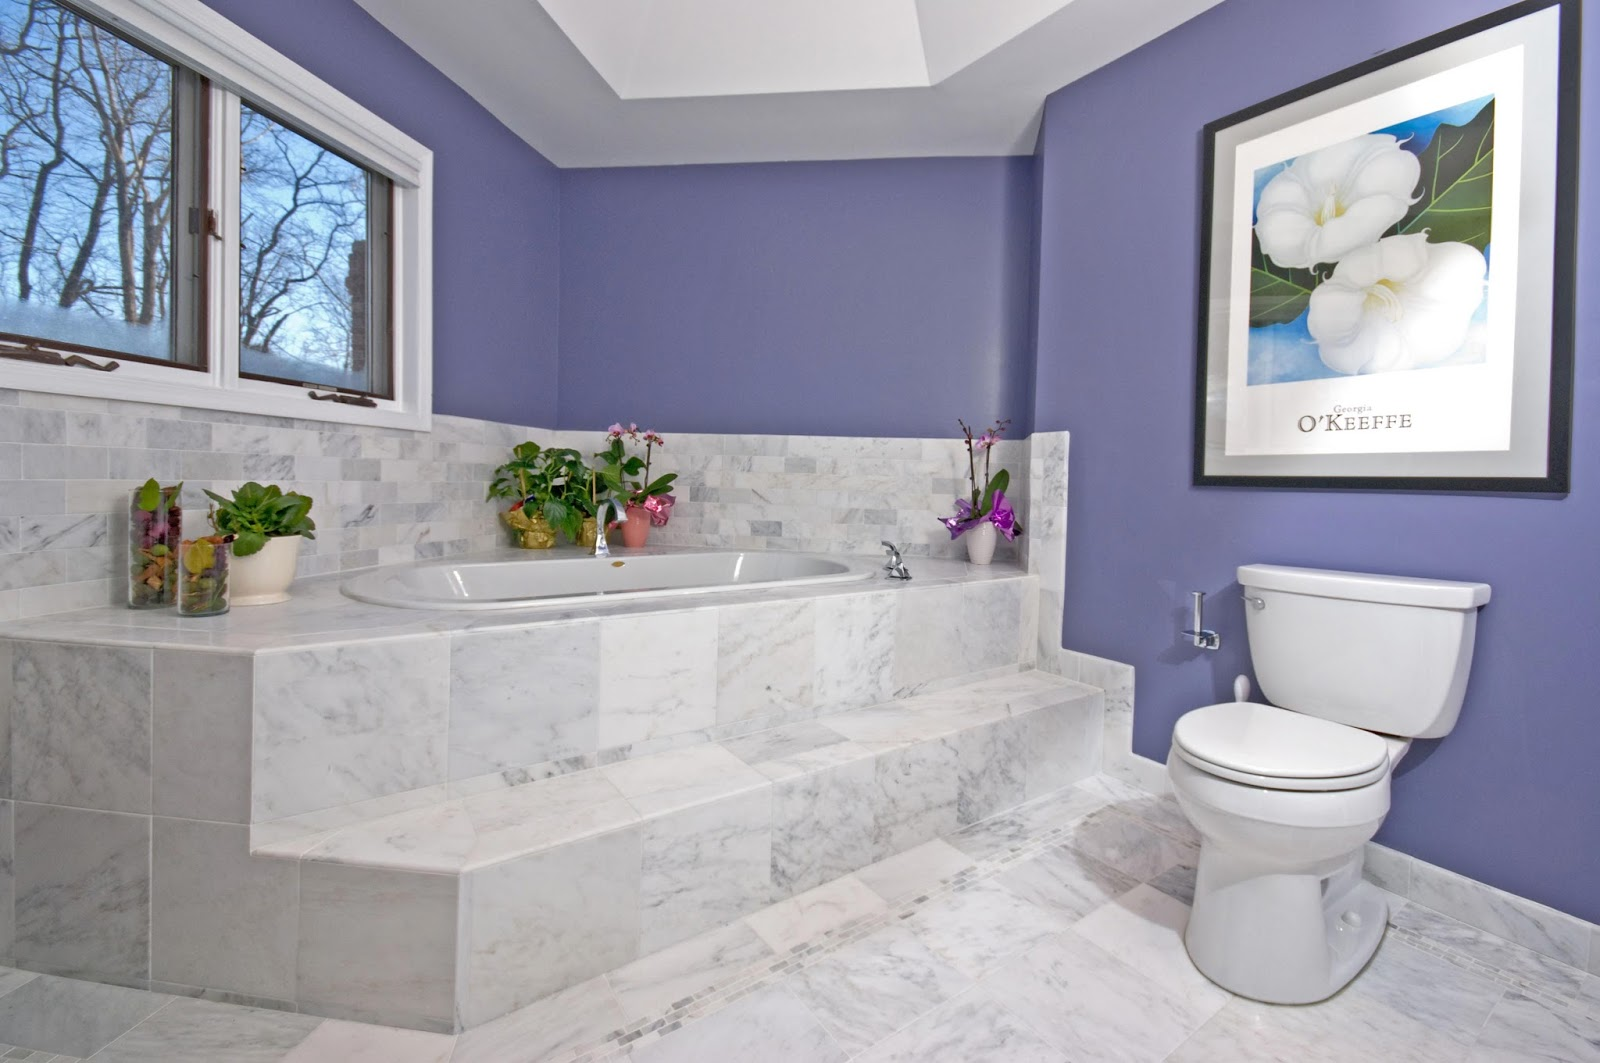 Qrg business services affordable bathroom remodeling tips for Bathroom improvements